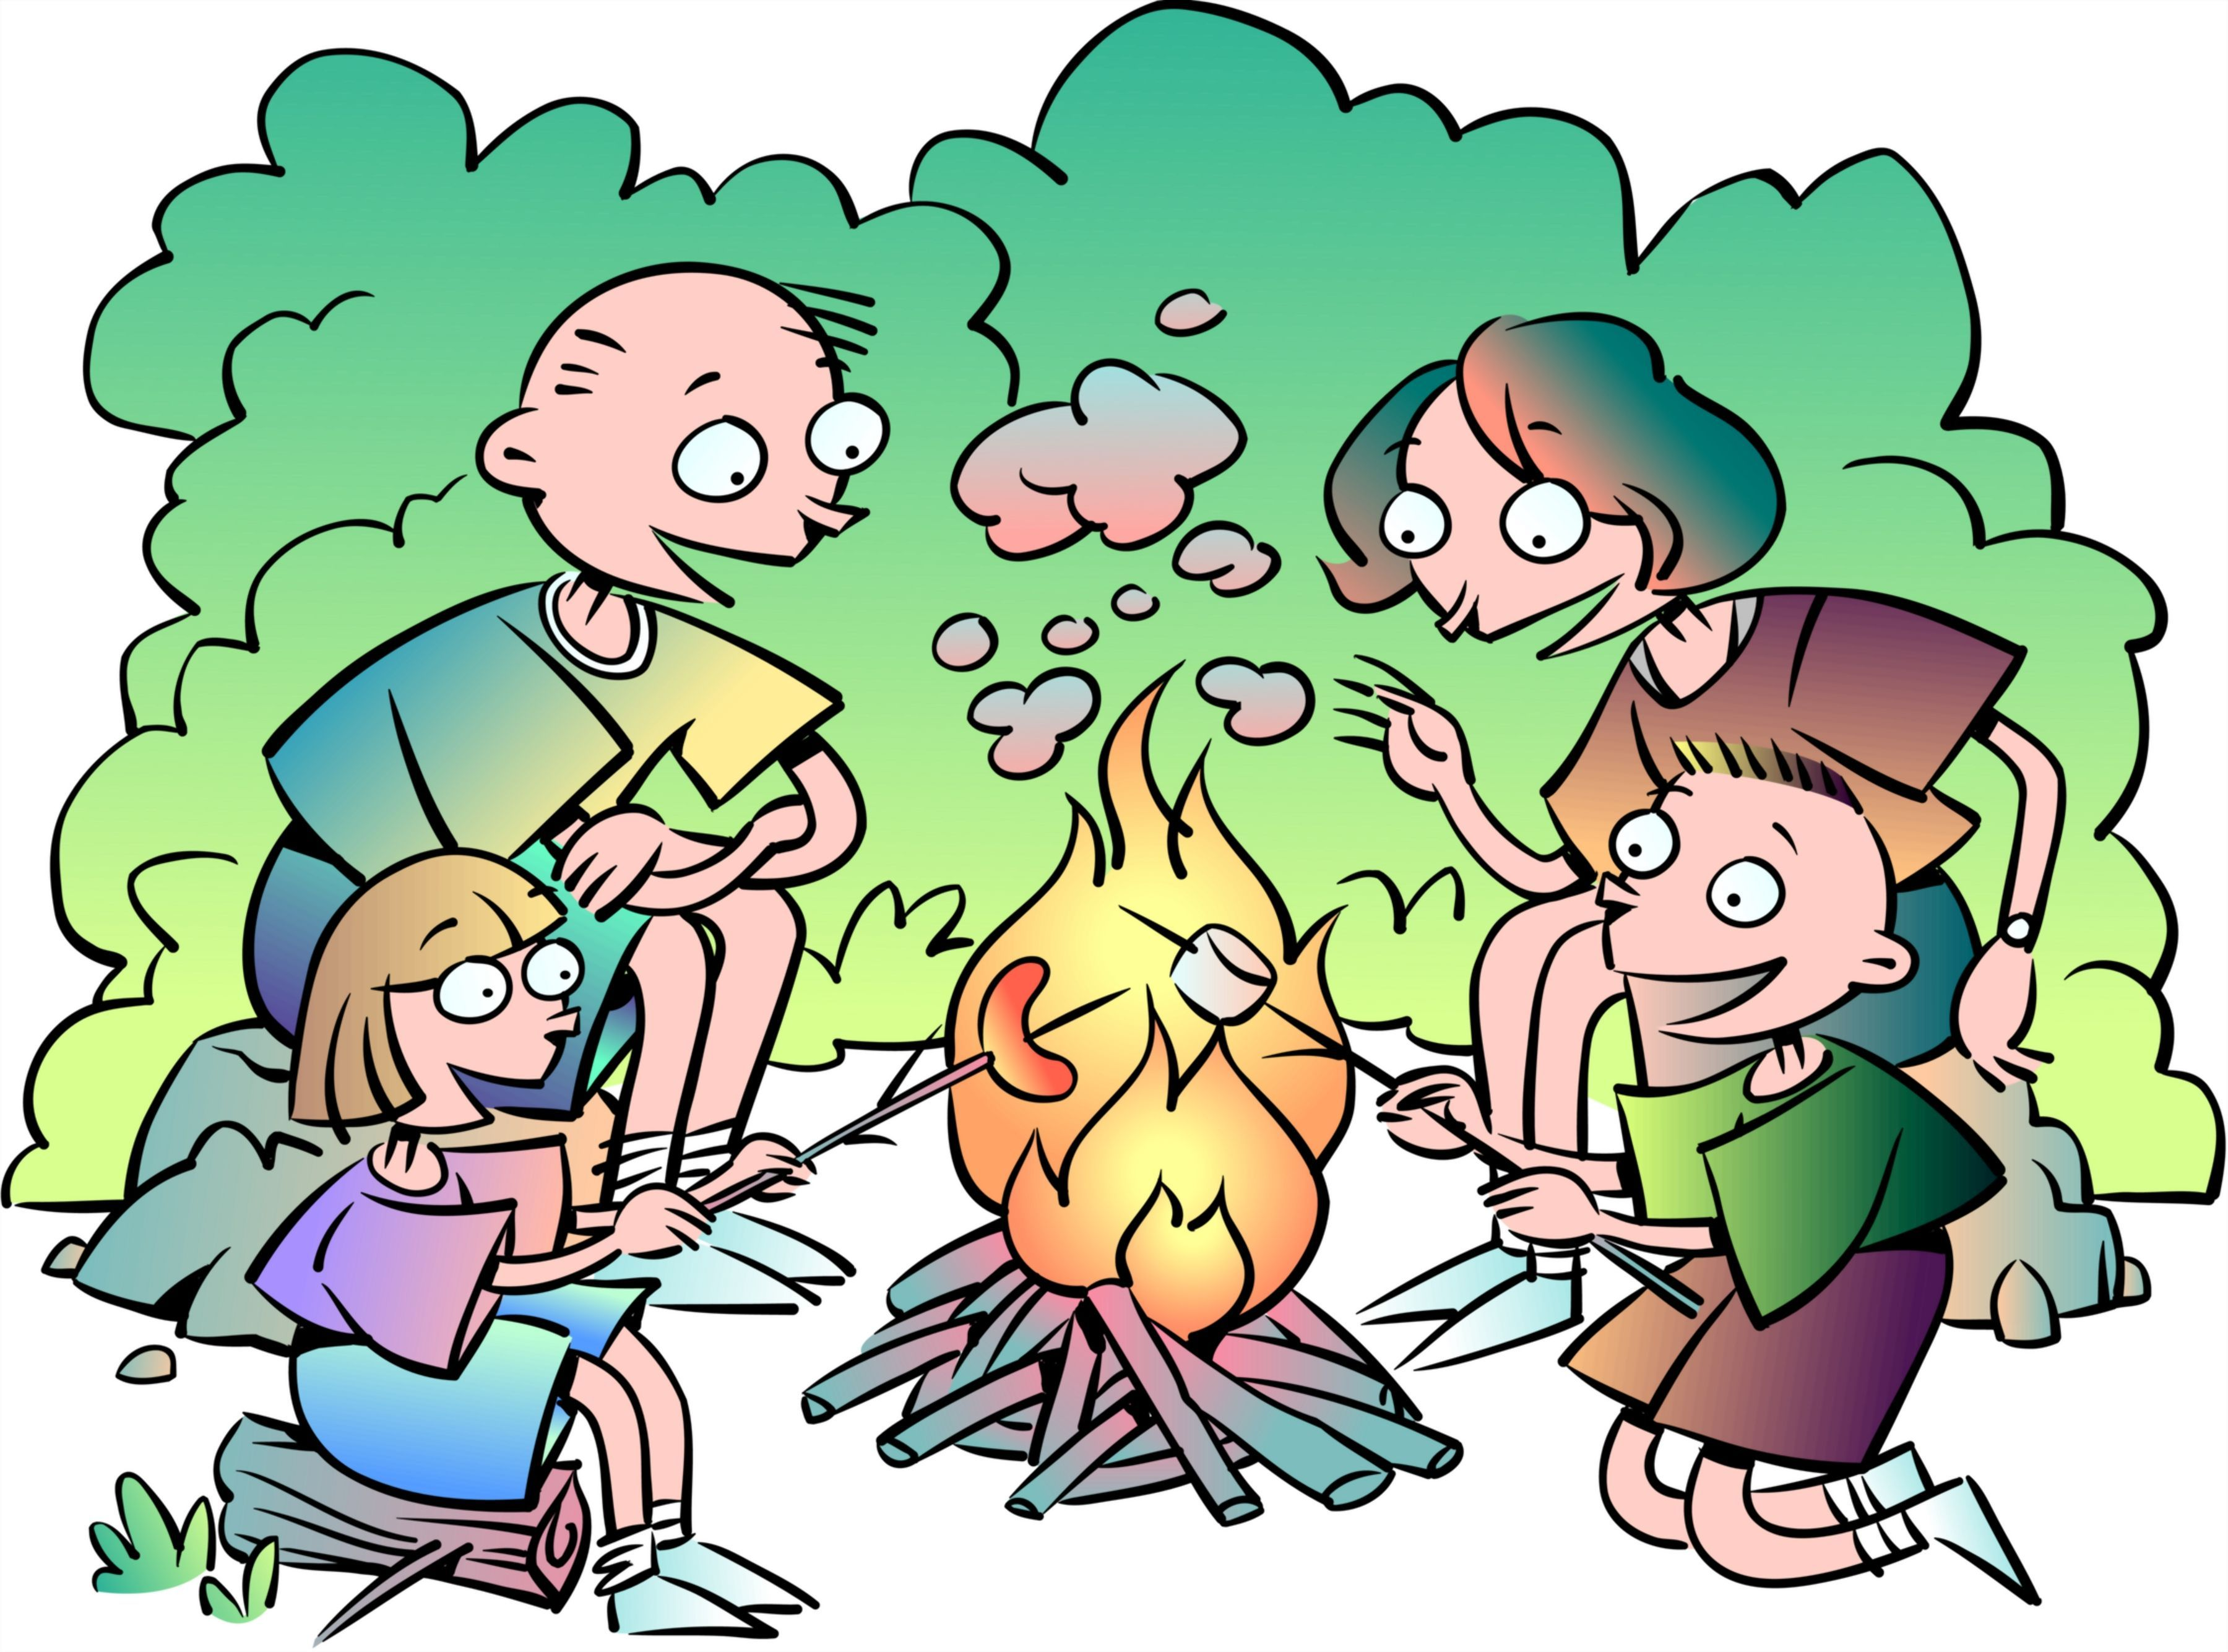 Roasting by campfire clipart clip art black and white stock Family at a campfire roasting marshmallows » Clipart Portal clip art black and white stock